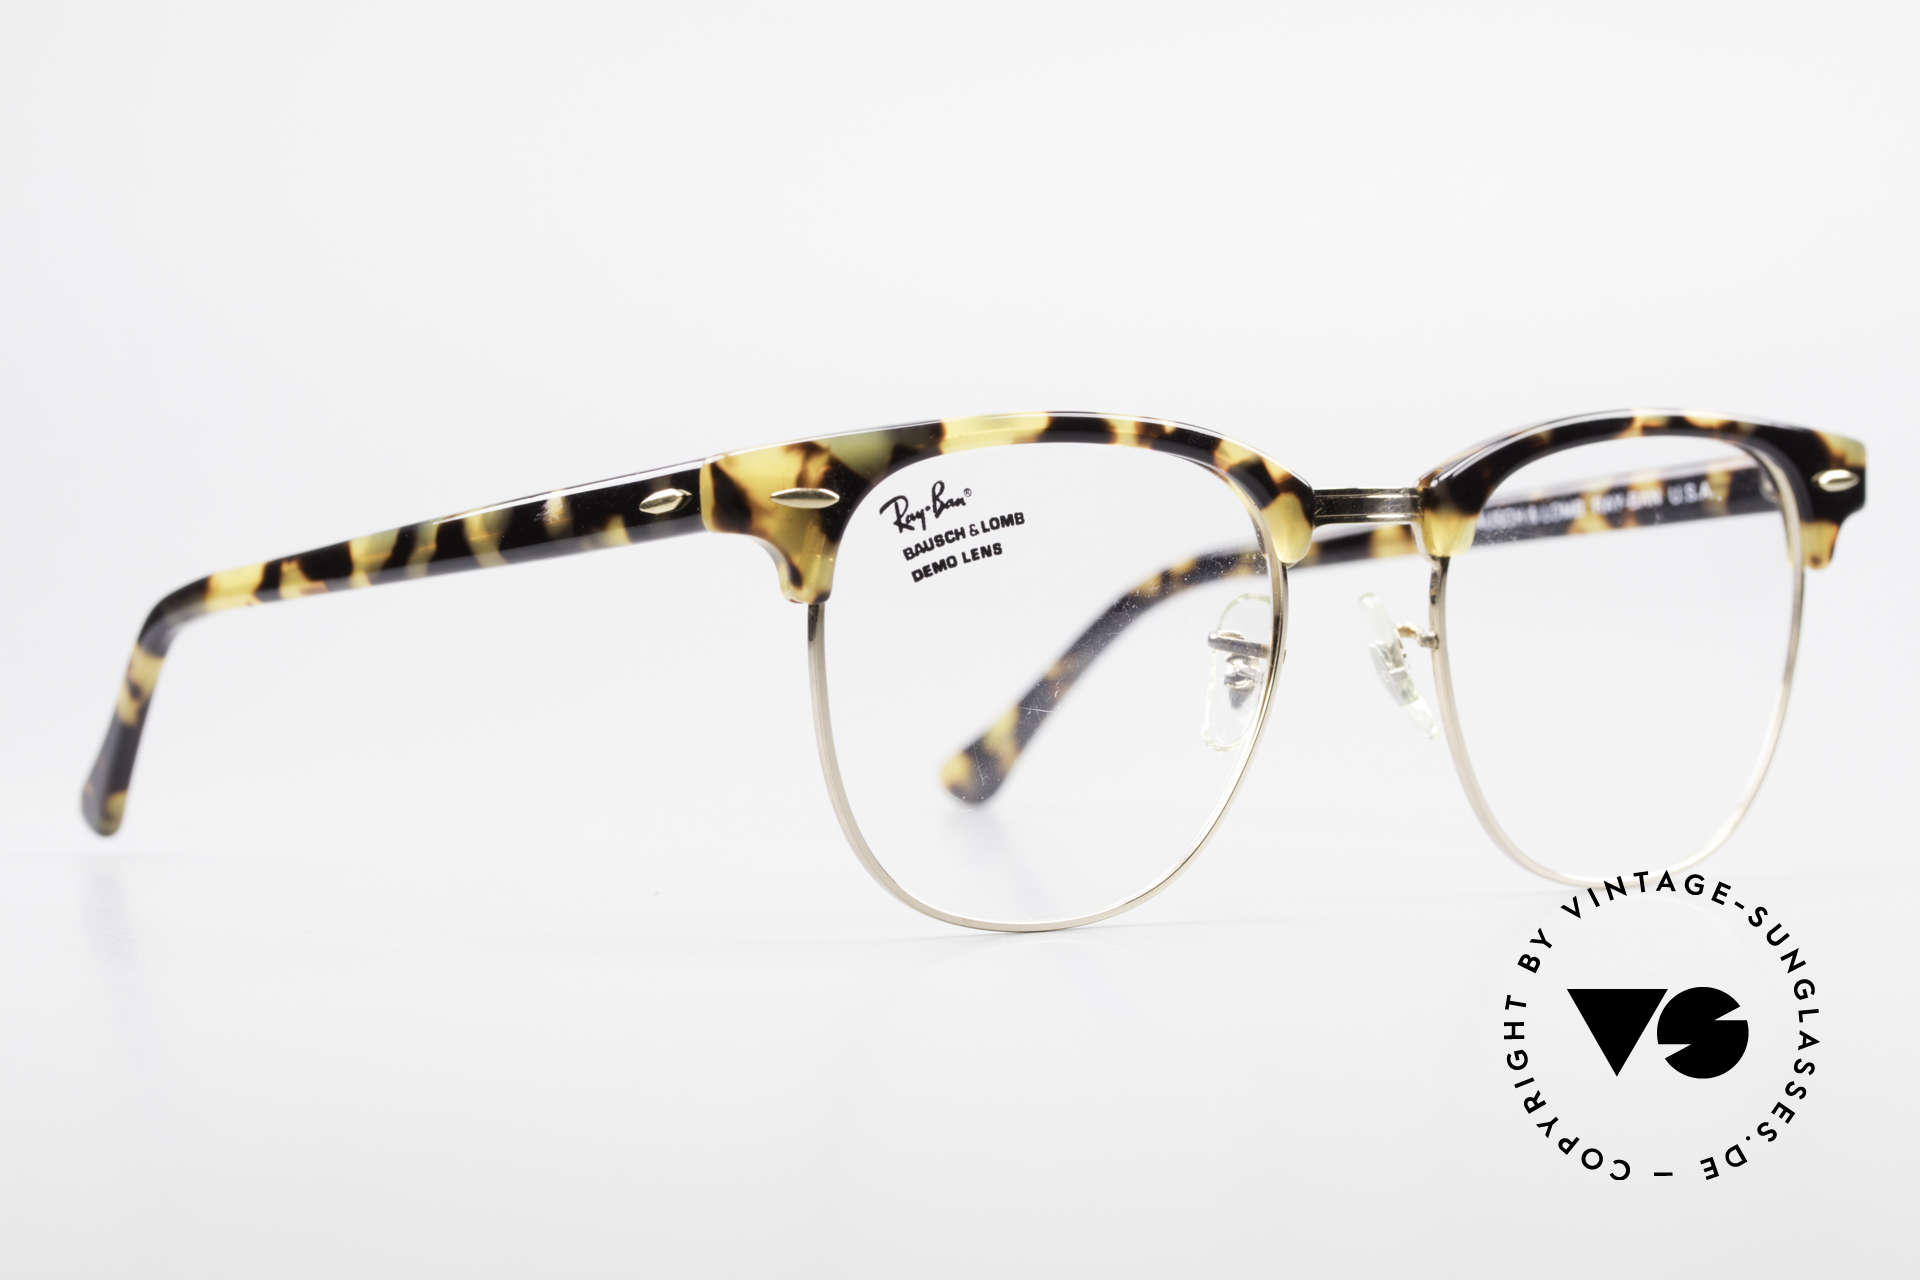 Ray Ban Clubmaster II Large Limited Edition USA B&L, limited special Edition: made upon request only, Made for Men